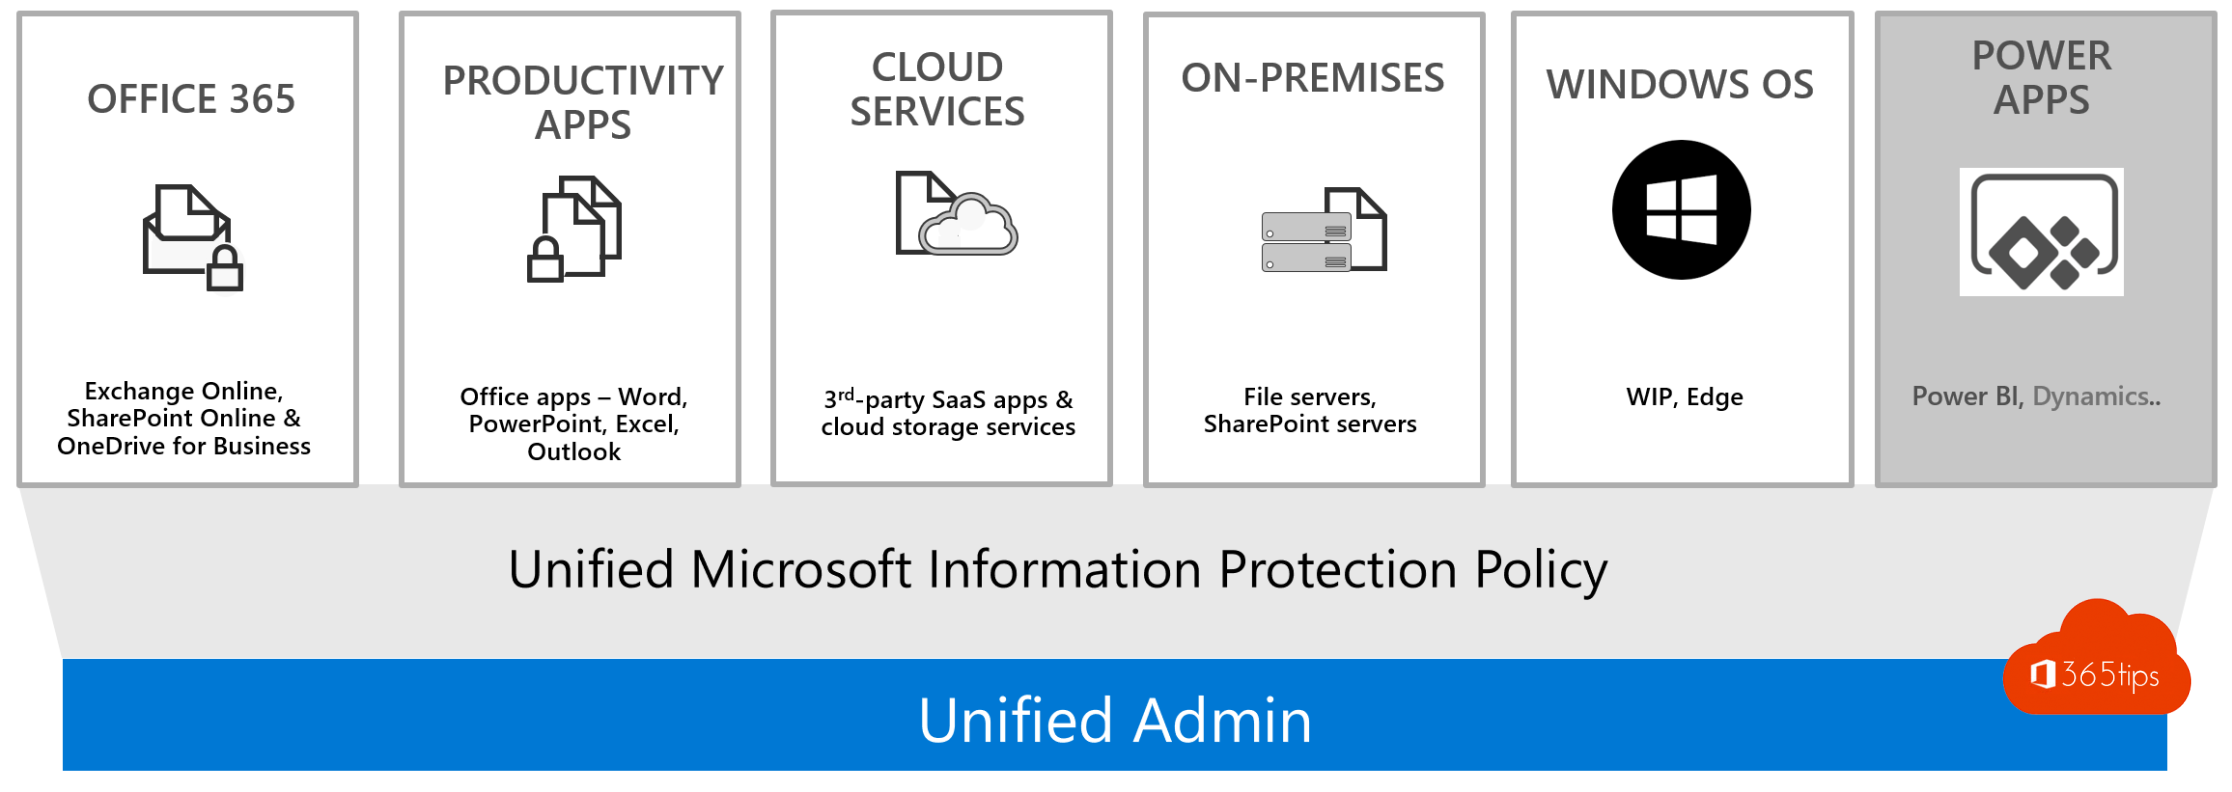 Unified Admin. Unified Microsoft Information Protection Policy